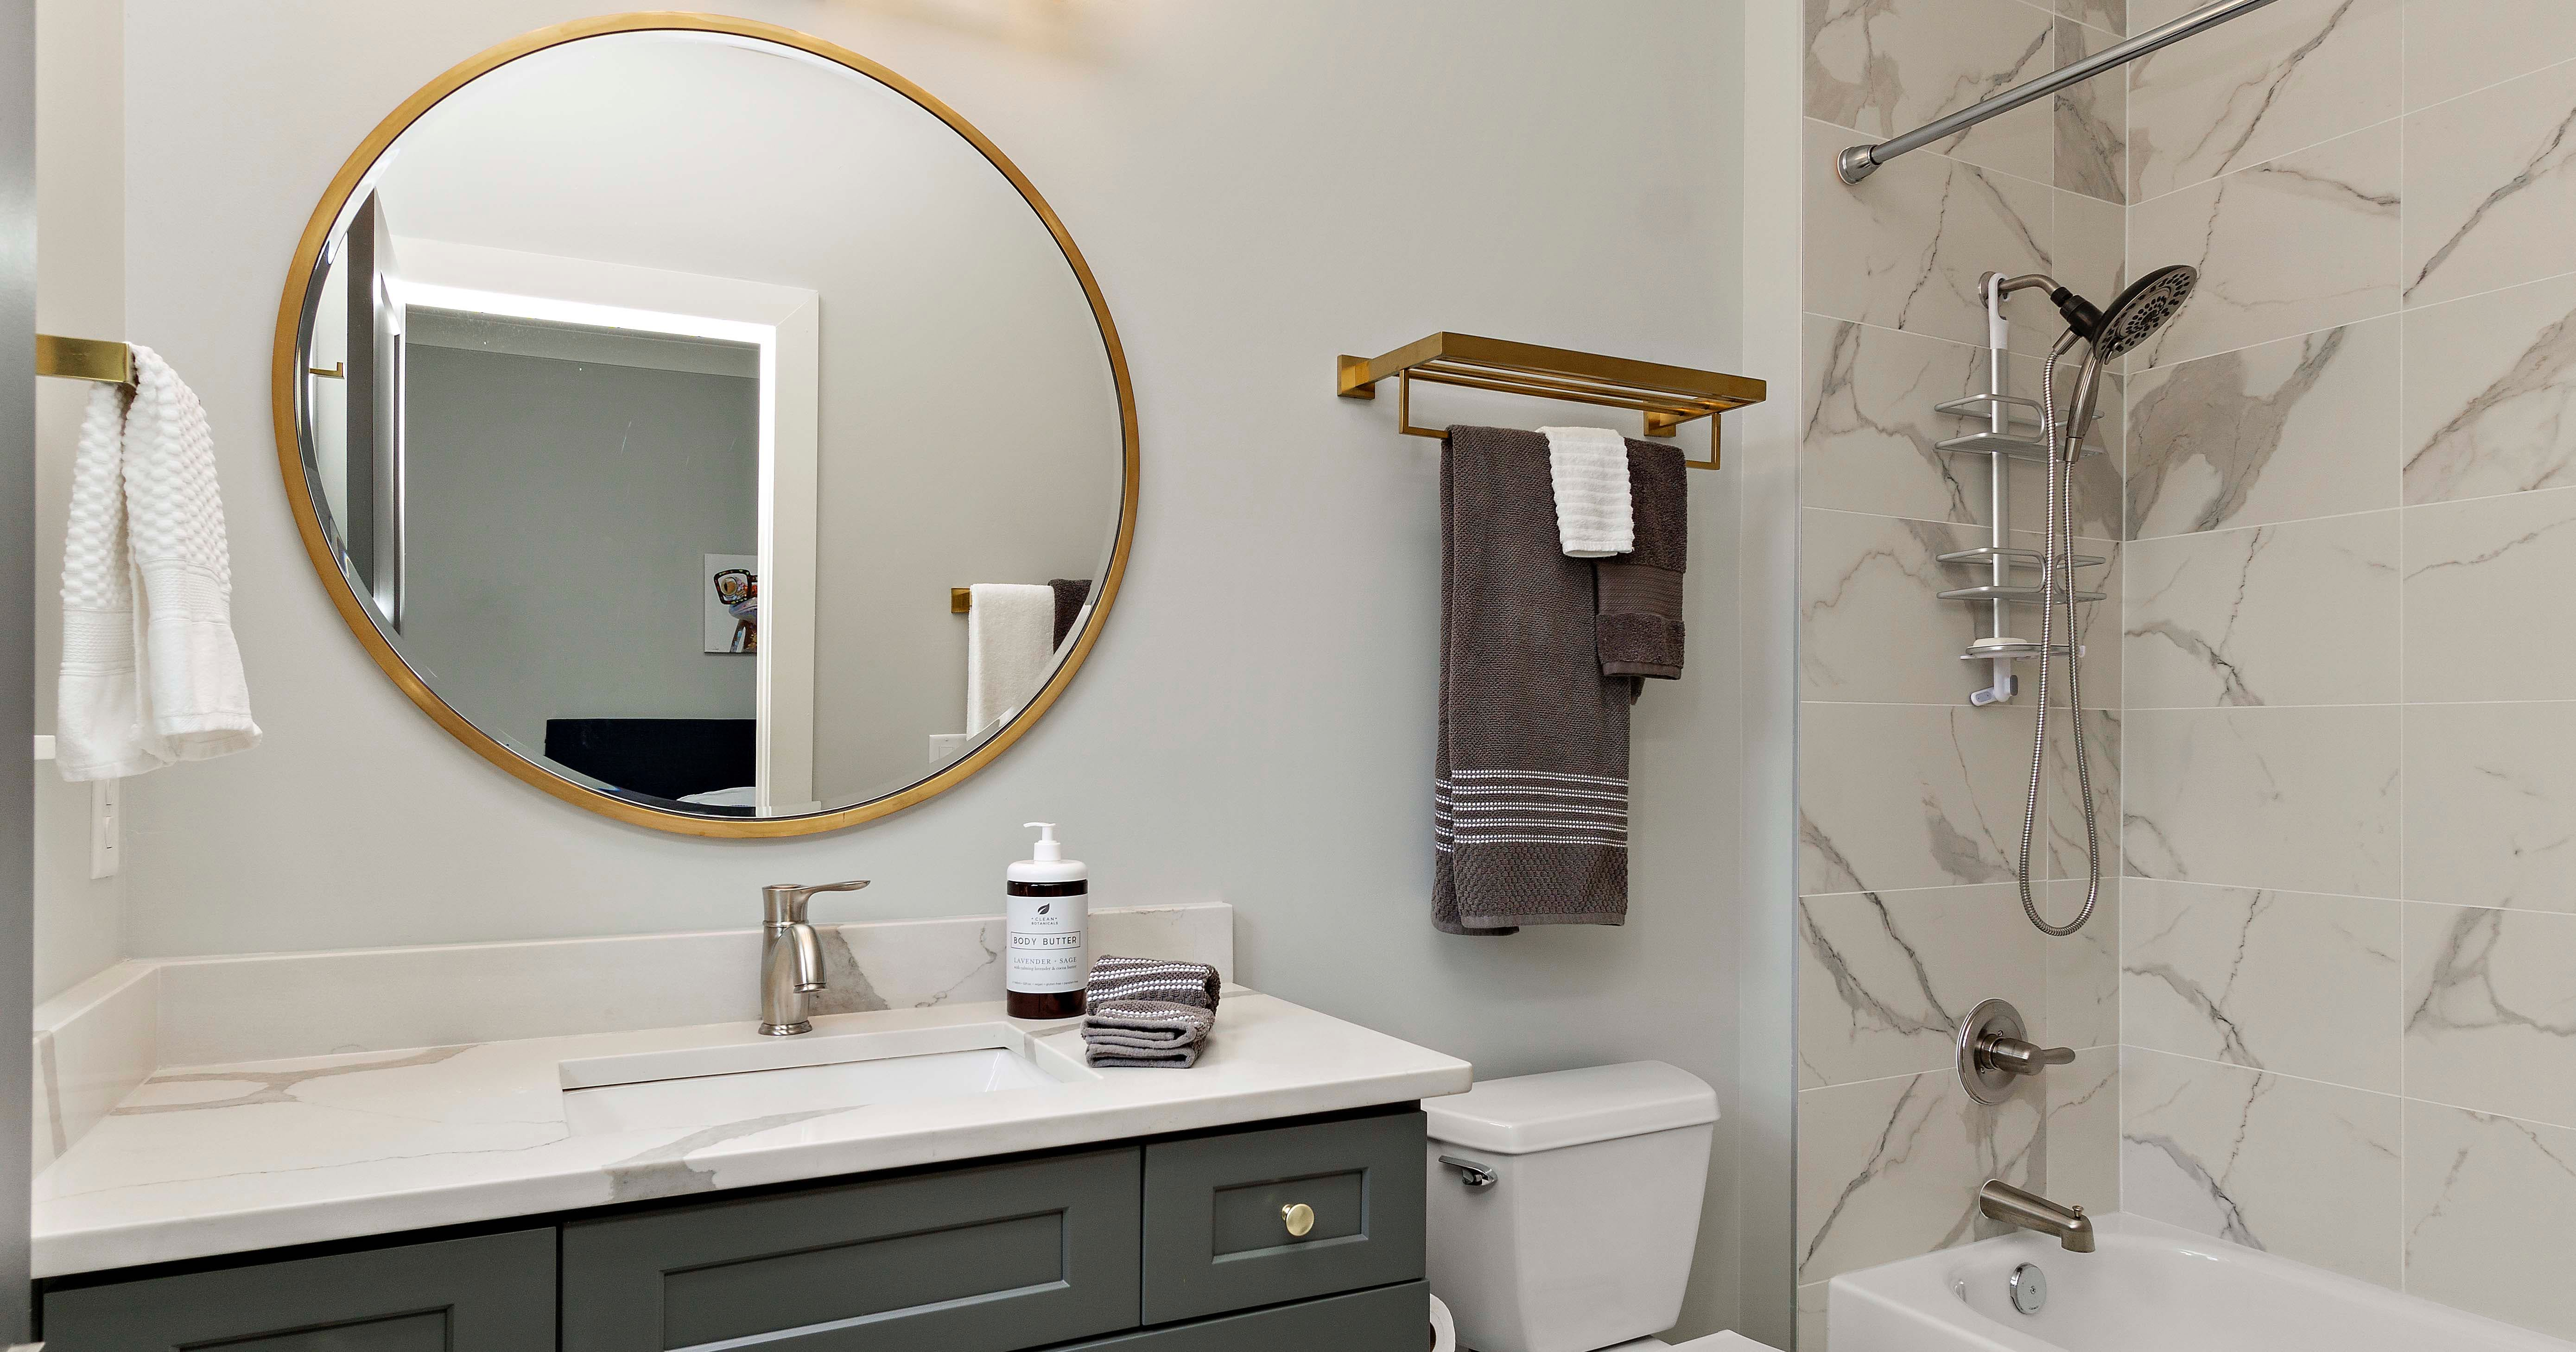 The 6 Bathroom Trends That Will be Everywhere in 2021